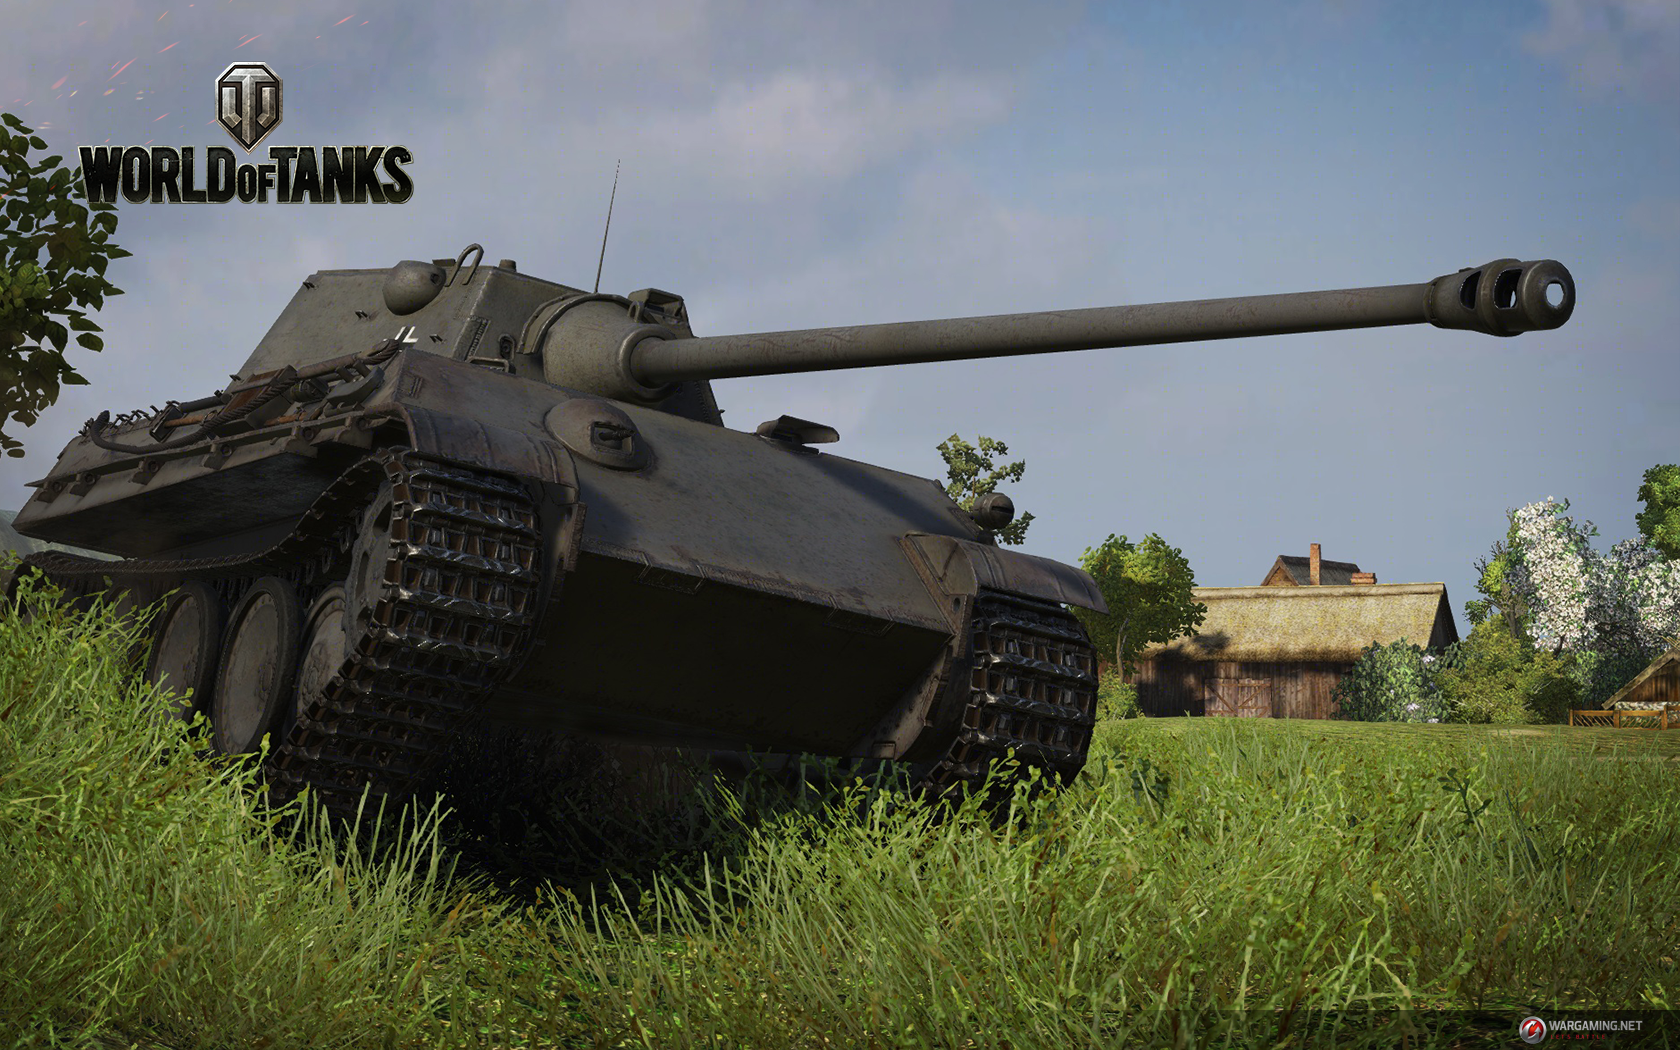 WoT_Screens_Tanks_Germany_Panther_Update_9_0_Image_01